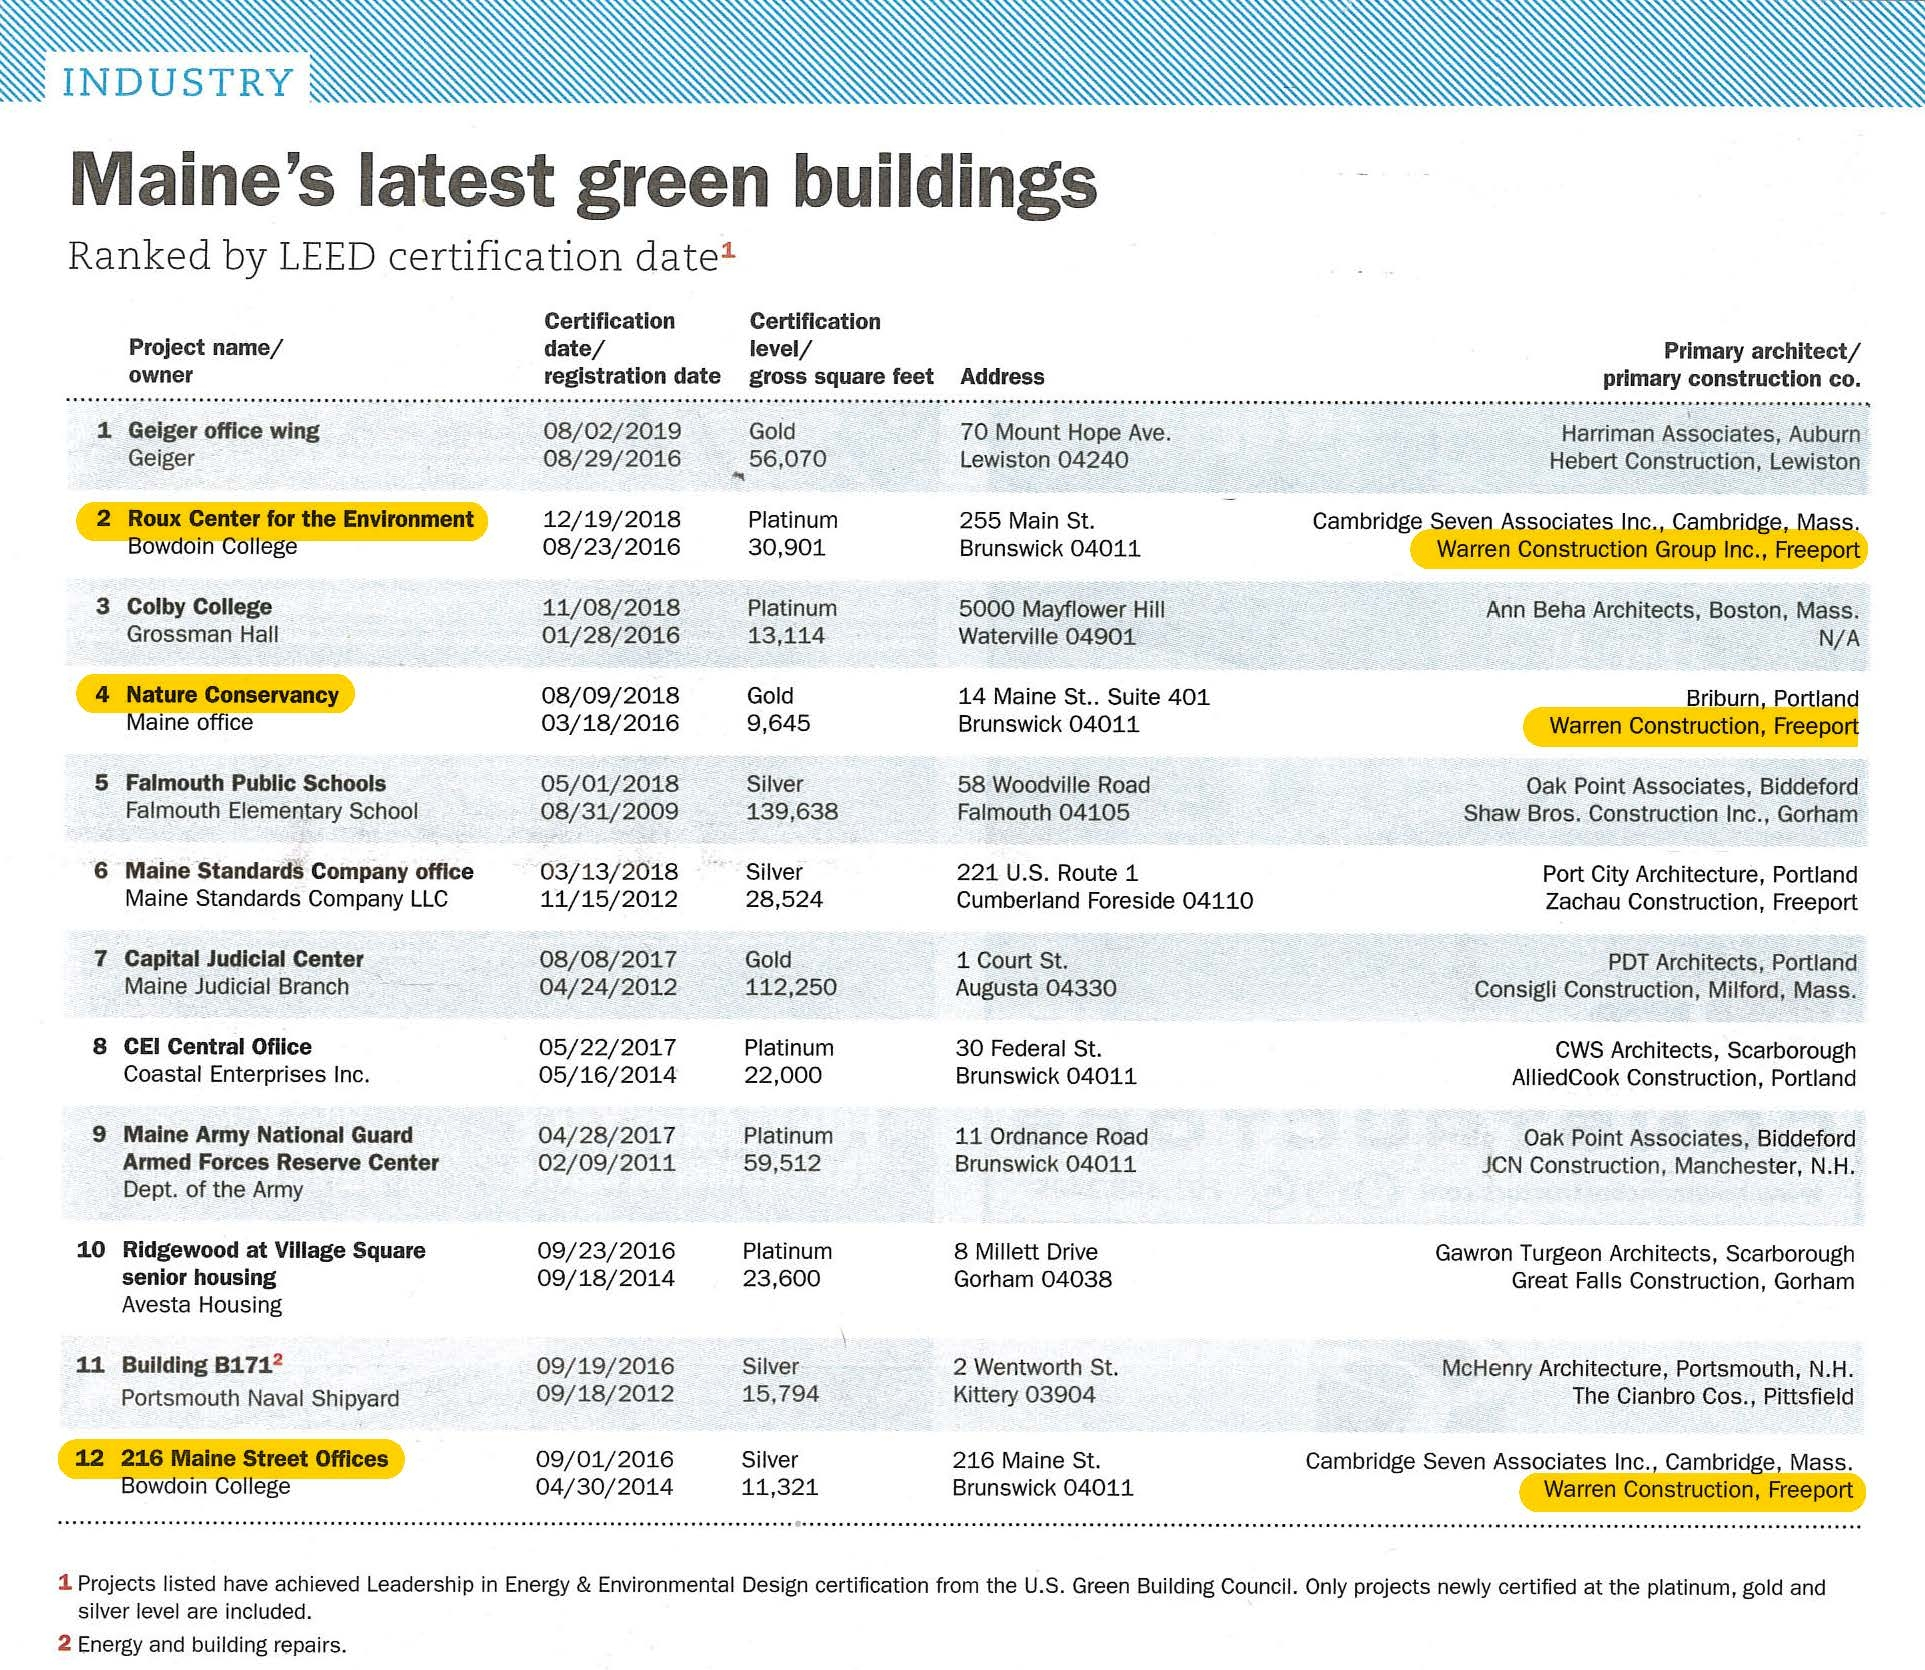 Maine's latest green buildings, LEED certified projects